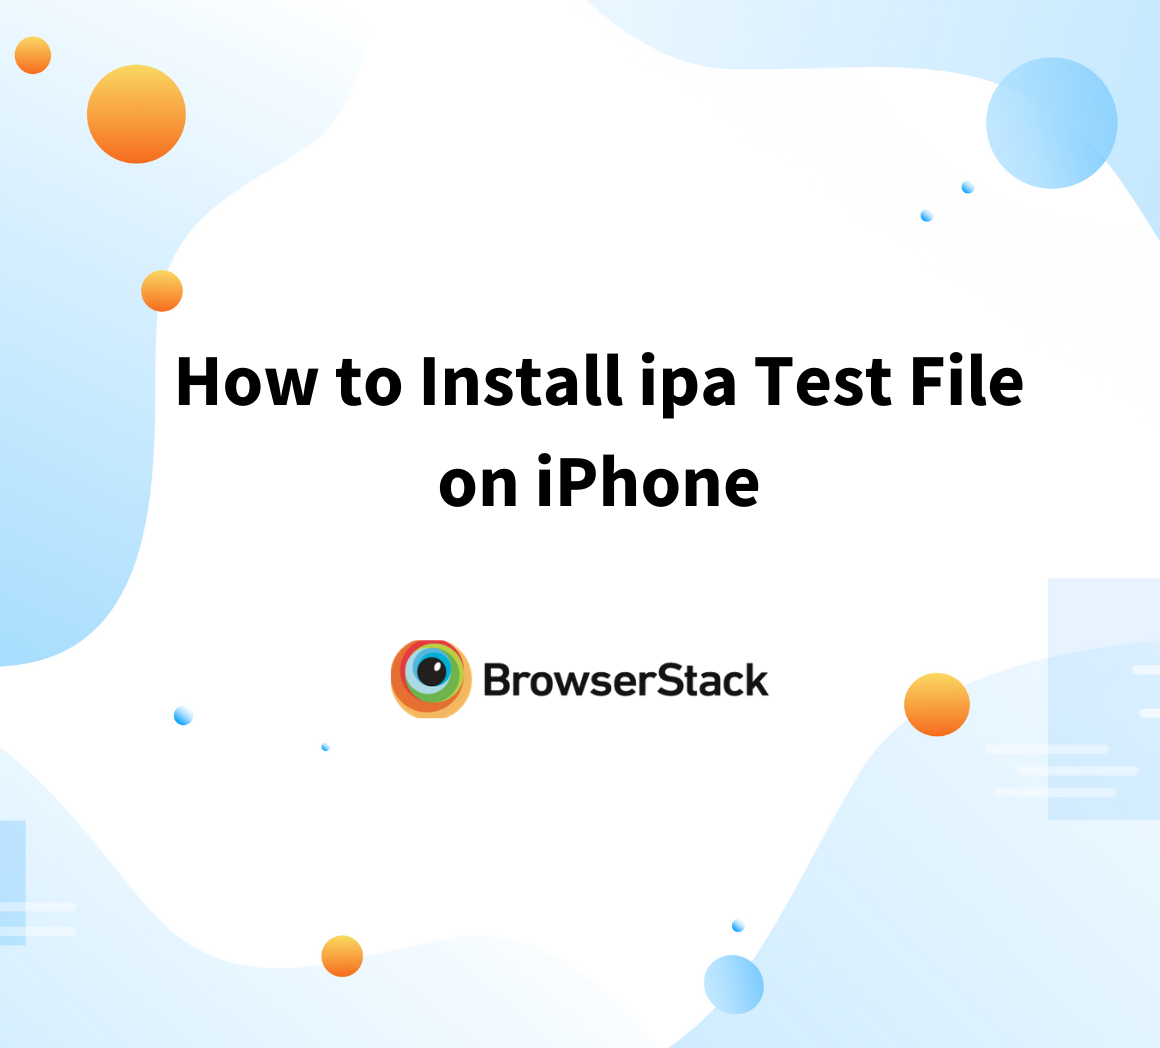 How to install ipa test file on iPhone